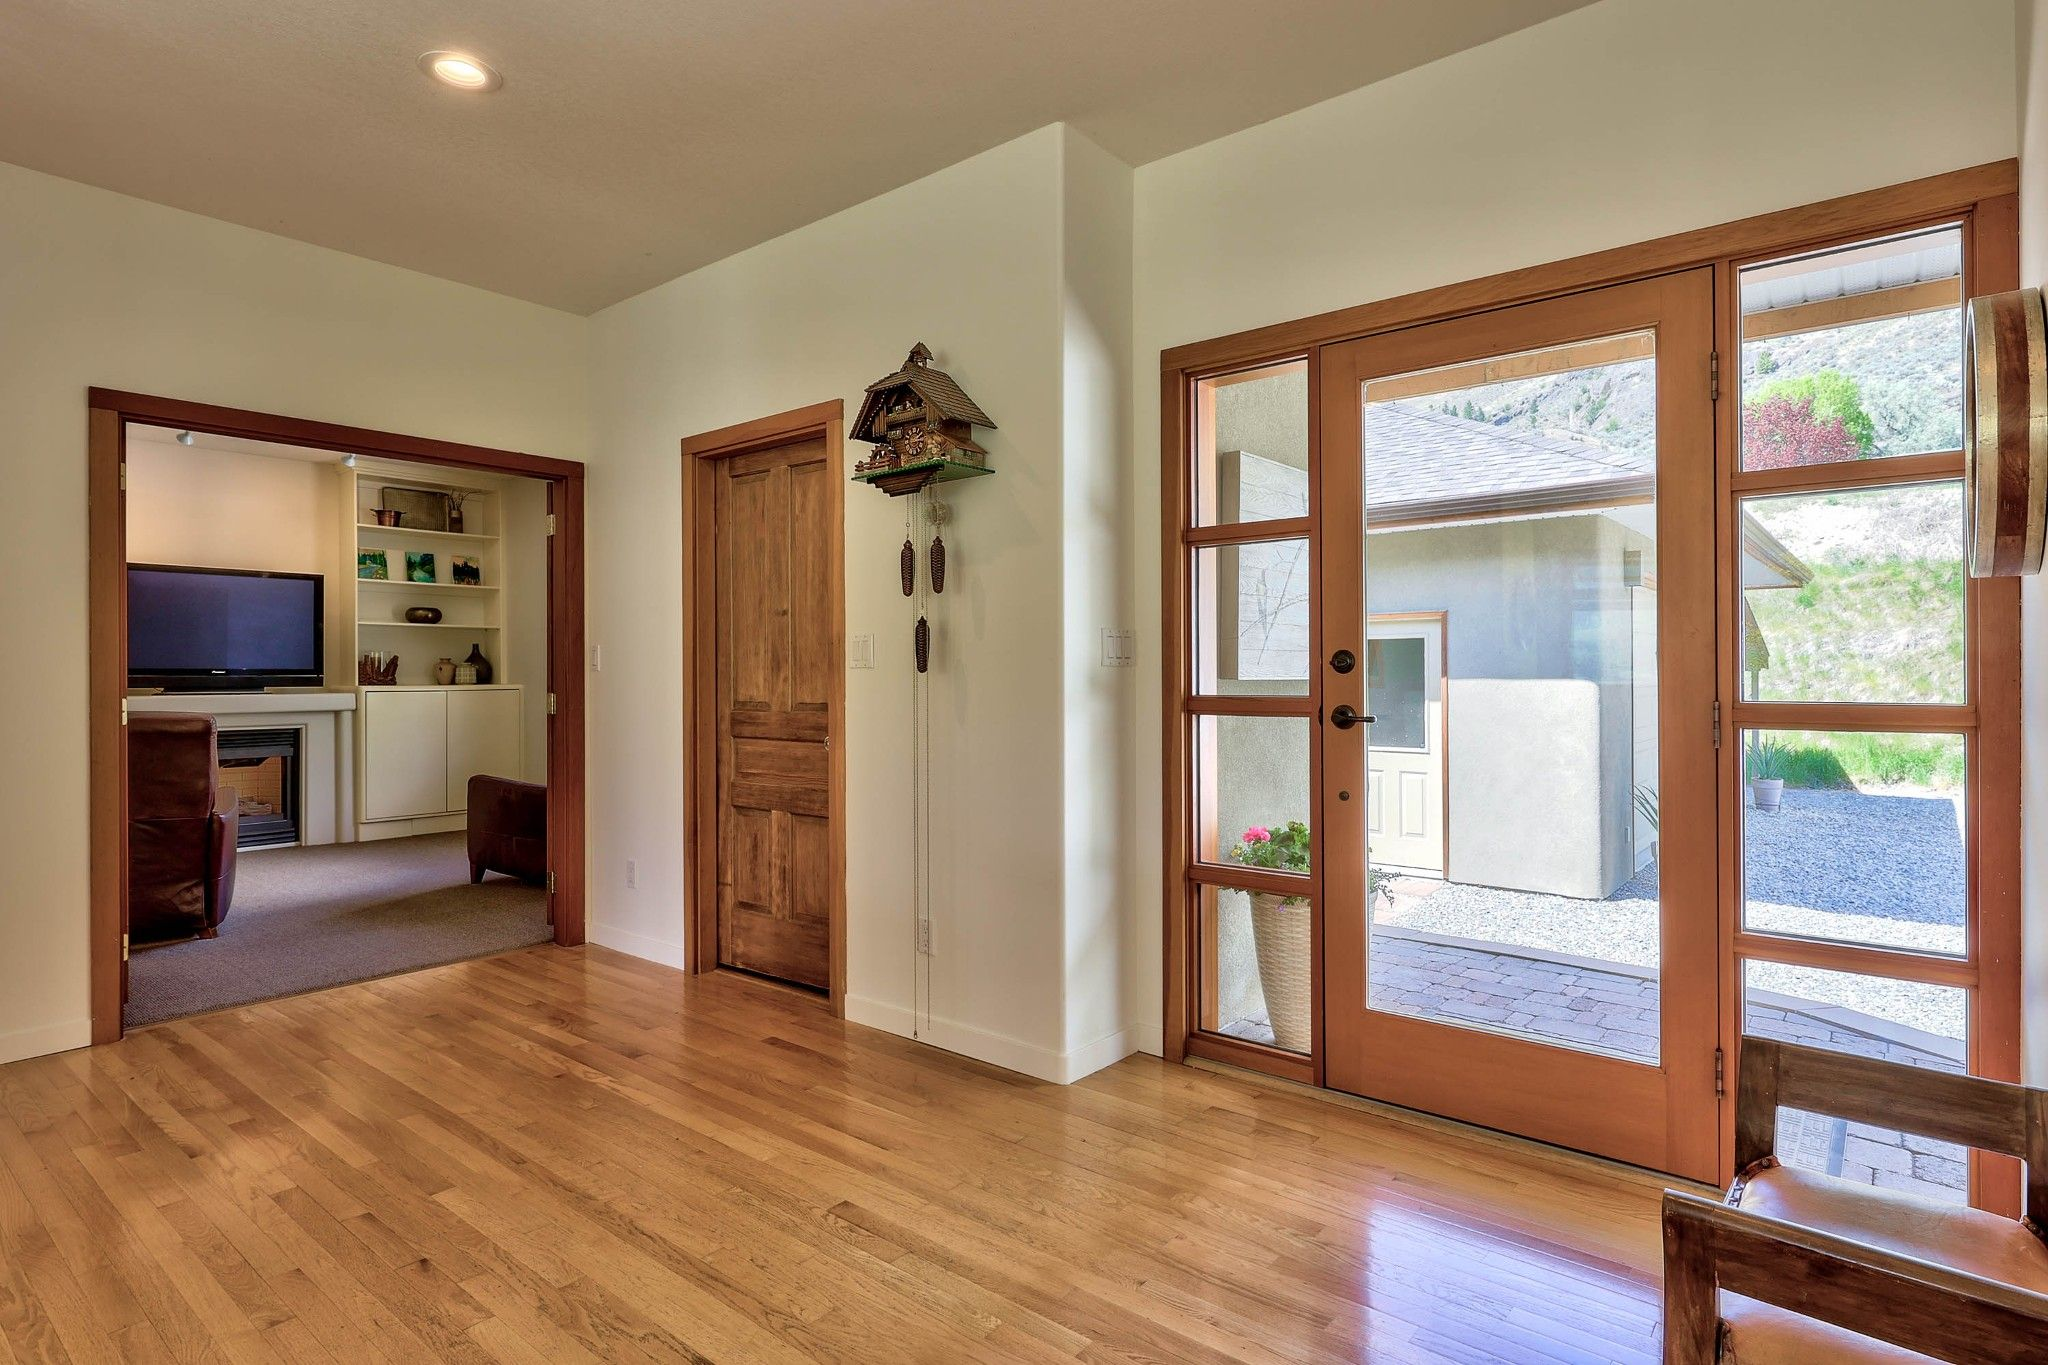 Photo 5: Photos: 3299 E Shuswap Road in Kamloops: South Thompson Valley House for sale : MLS®# 162162